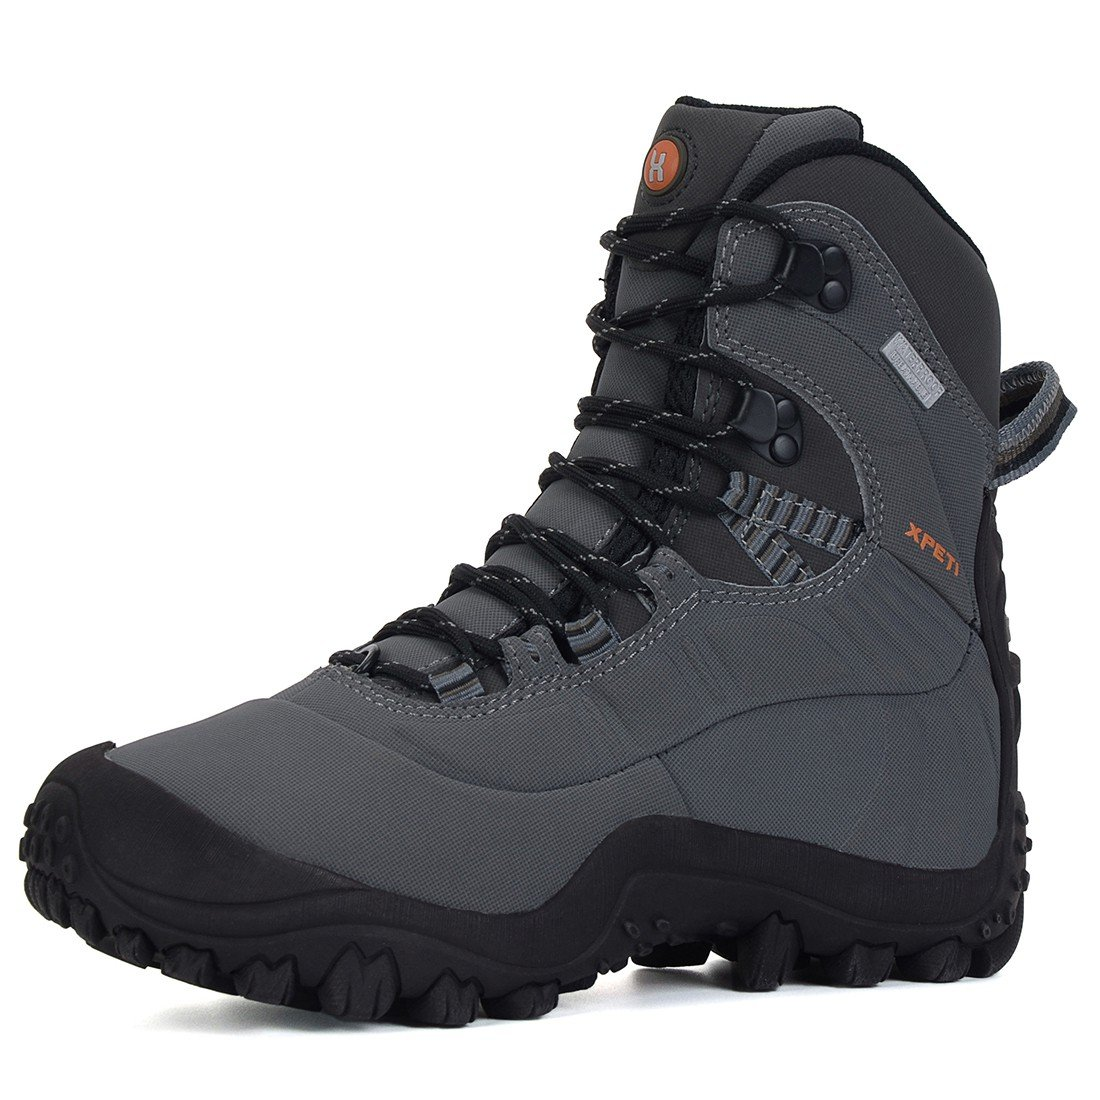 XPETI Women's Waterproof Mid High-Top Hiking Mountaineering Outdoor Boot Light Grey 9